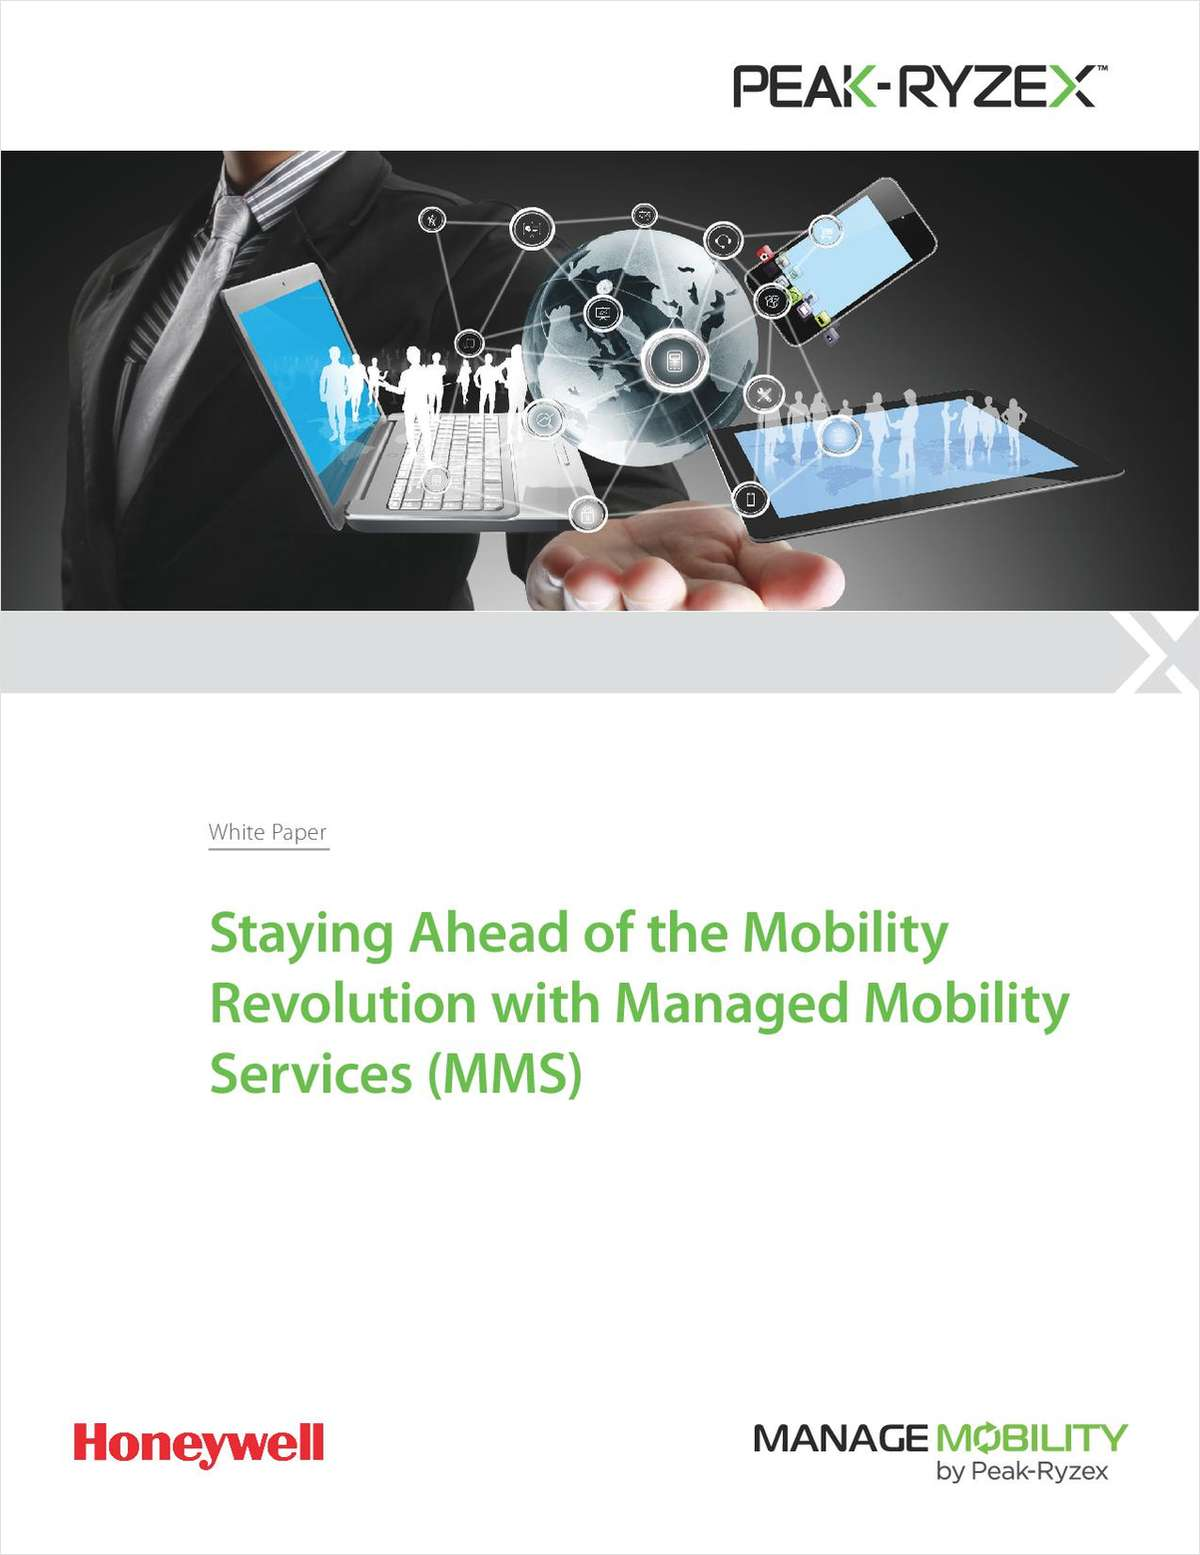 Staying Ahead of the Mobility Revolution with Managed Mobility Services (MMS)